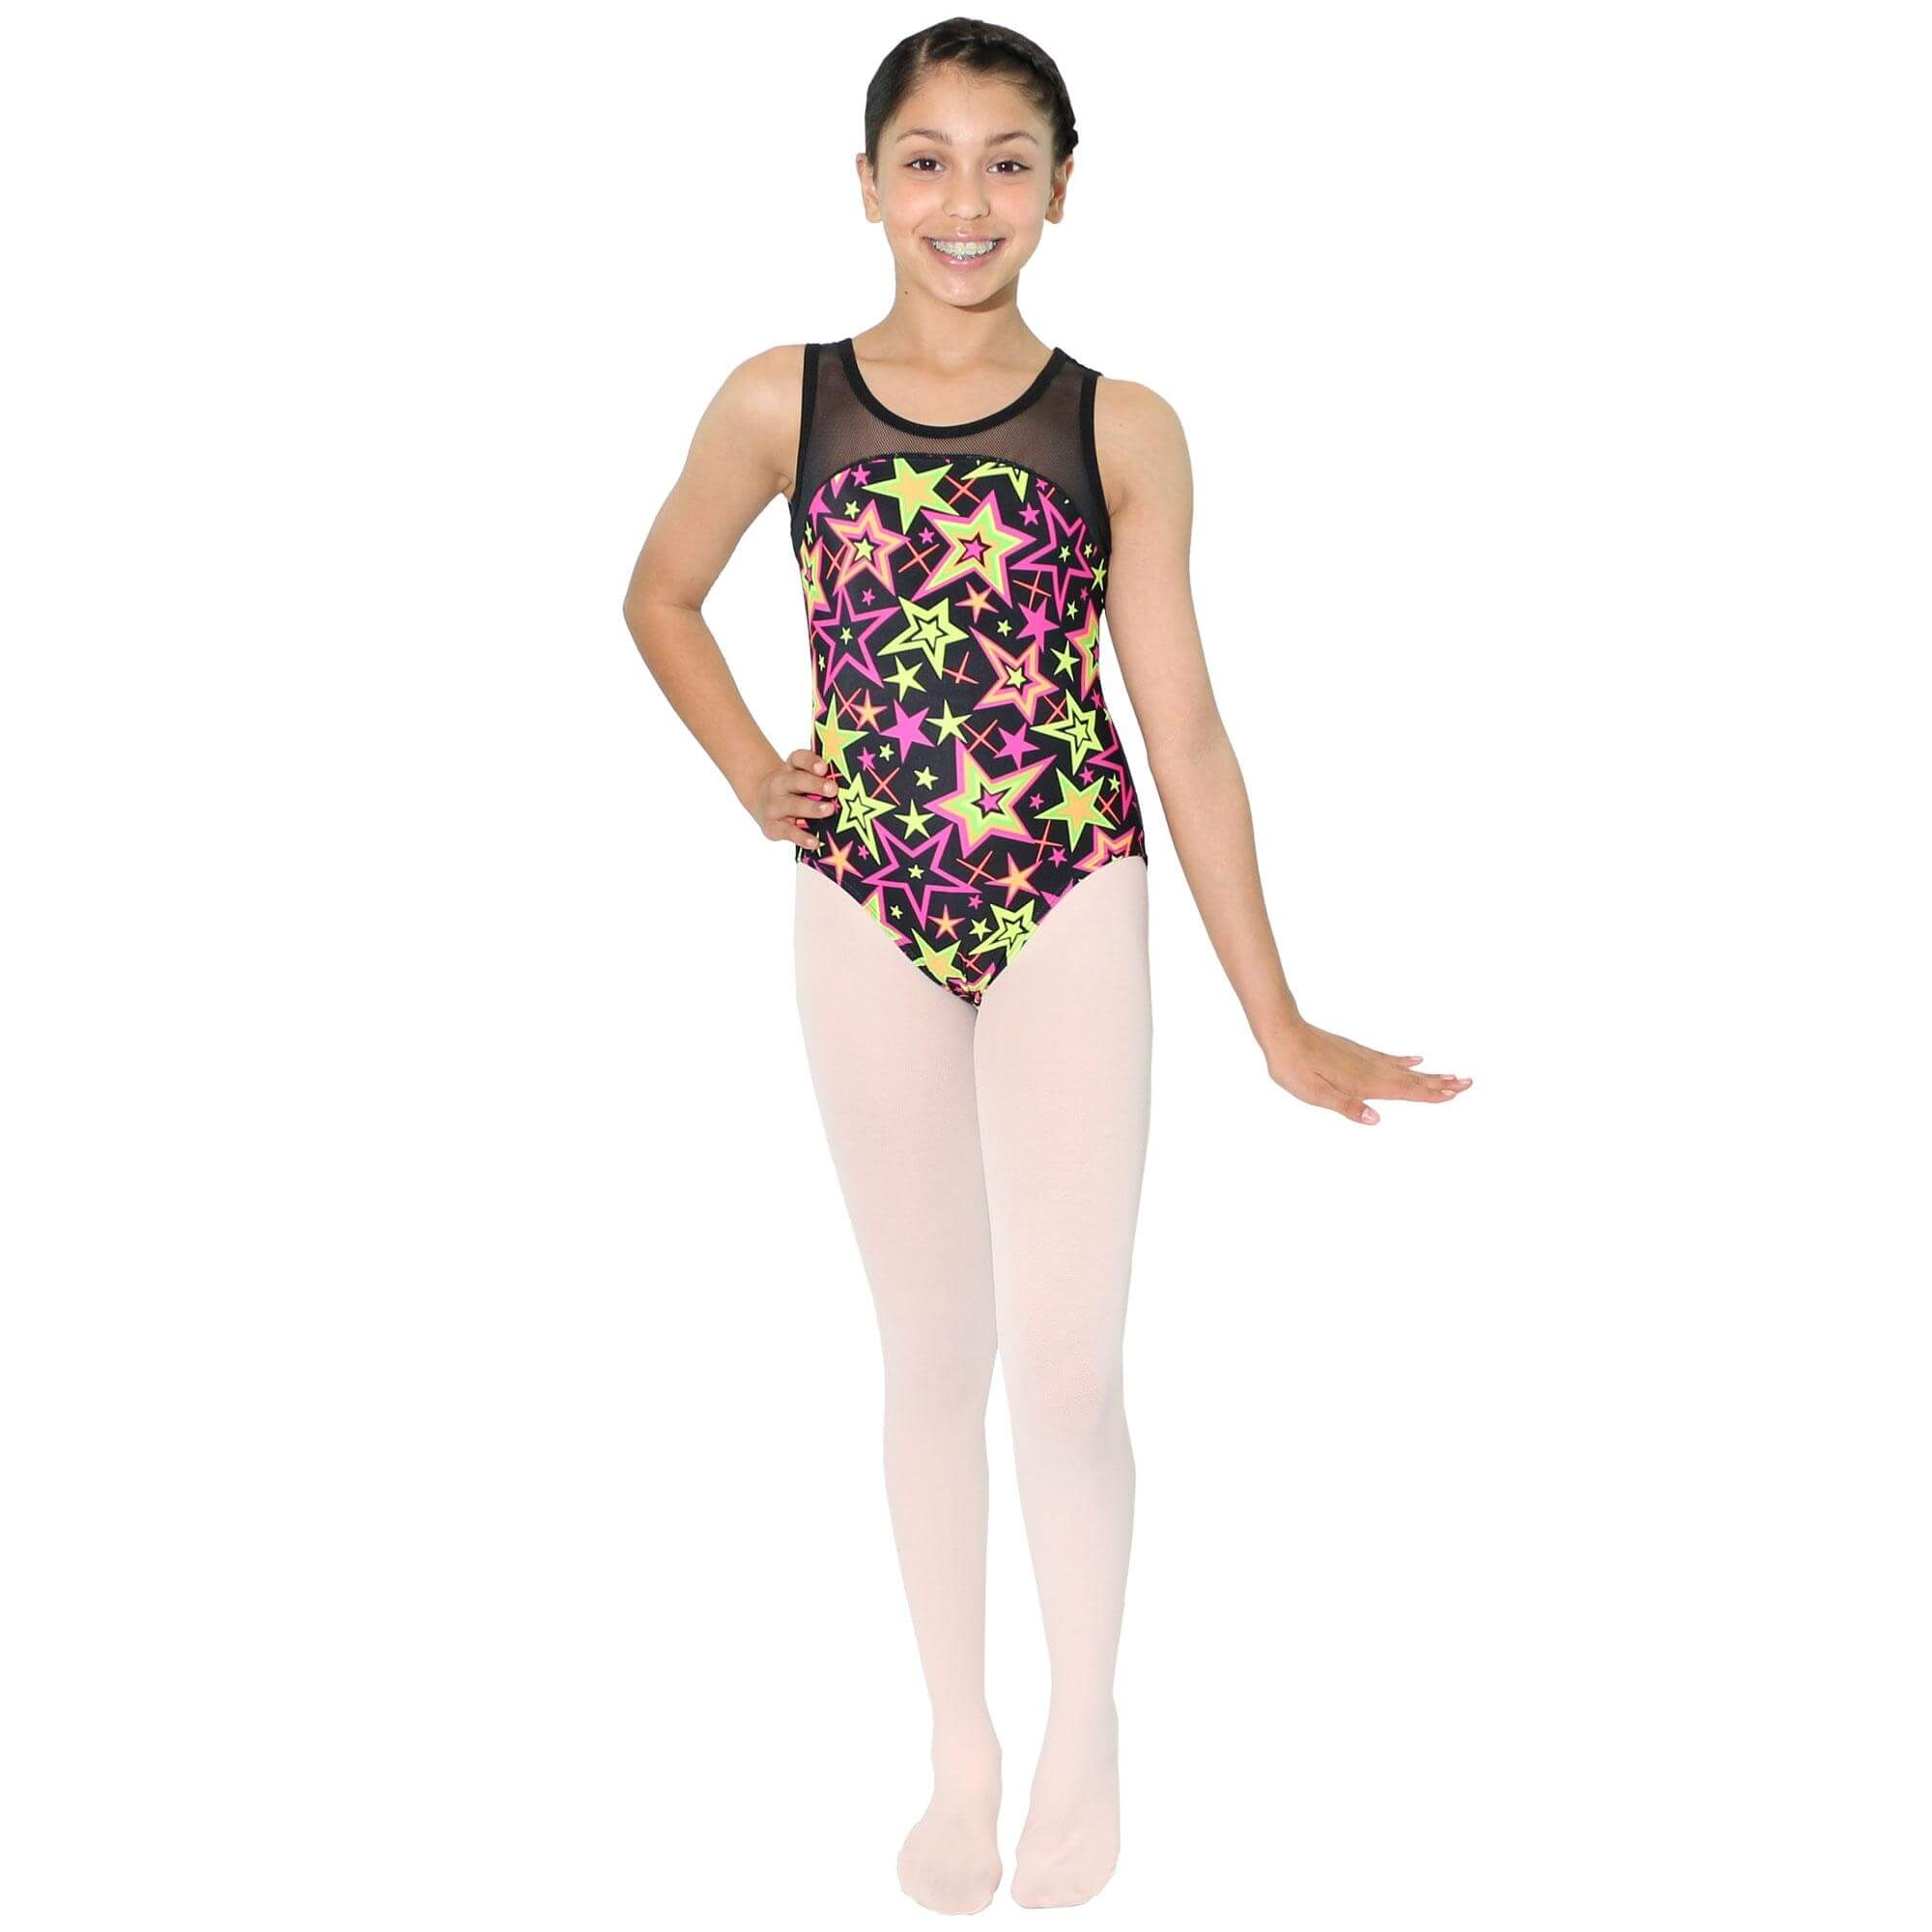 Reflectionz Black Star Leotard - Click Image to Close